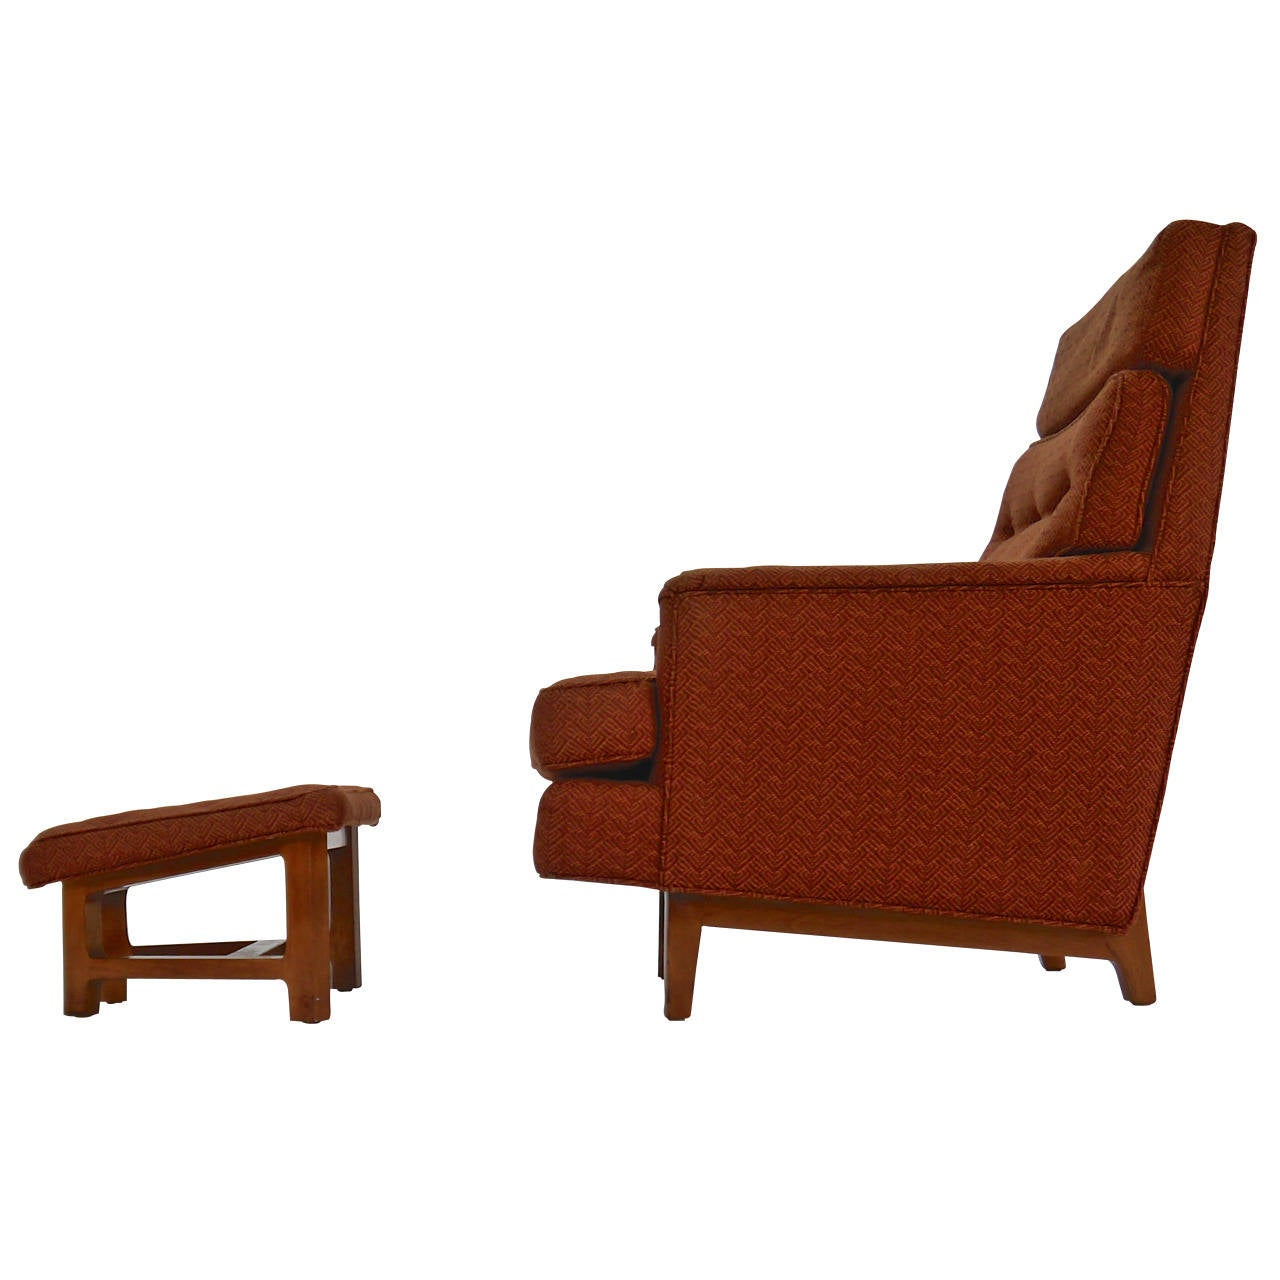 Lounge Chair and Ottoman by Edward Wormley for Dunbar